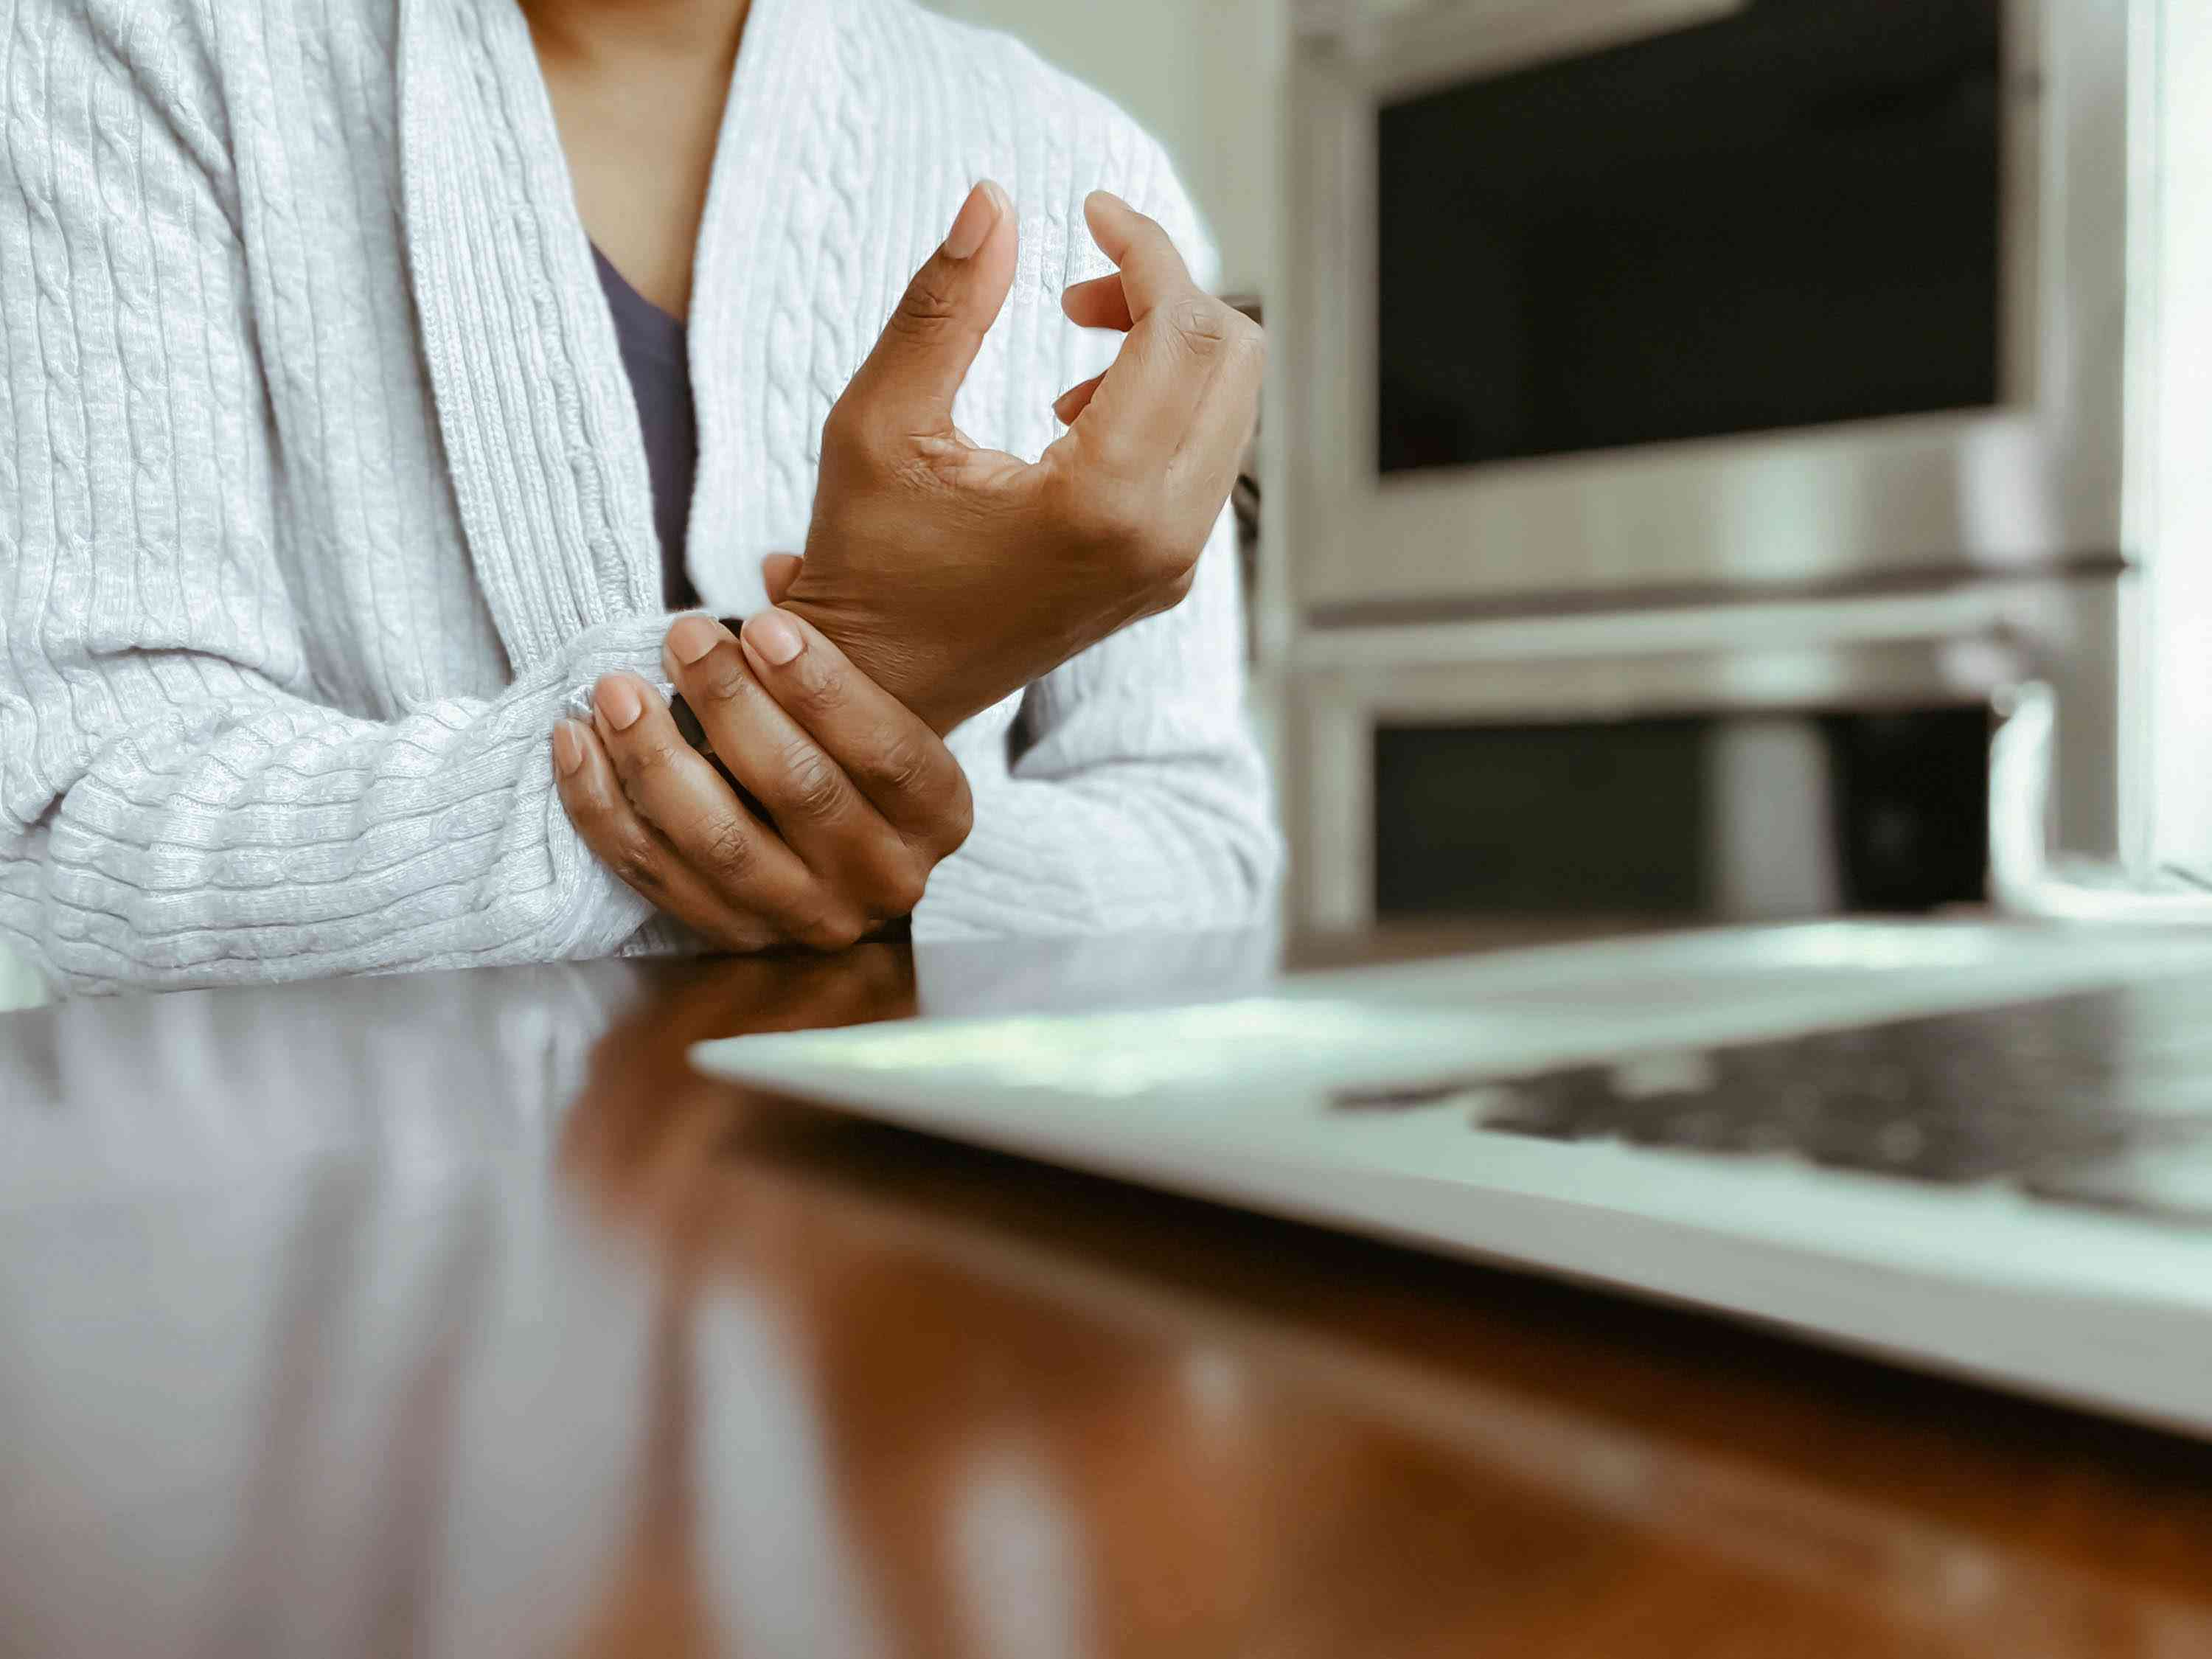 Woman Using Laptop Holds Wrist in Pain